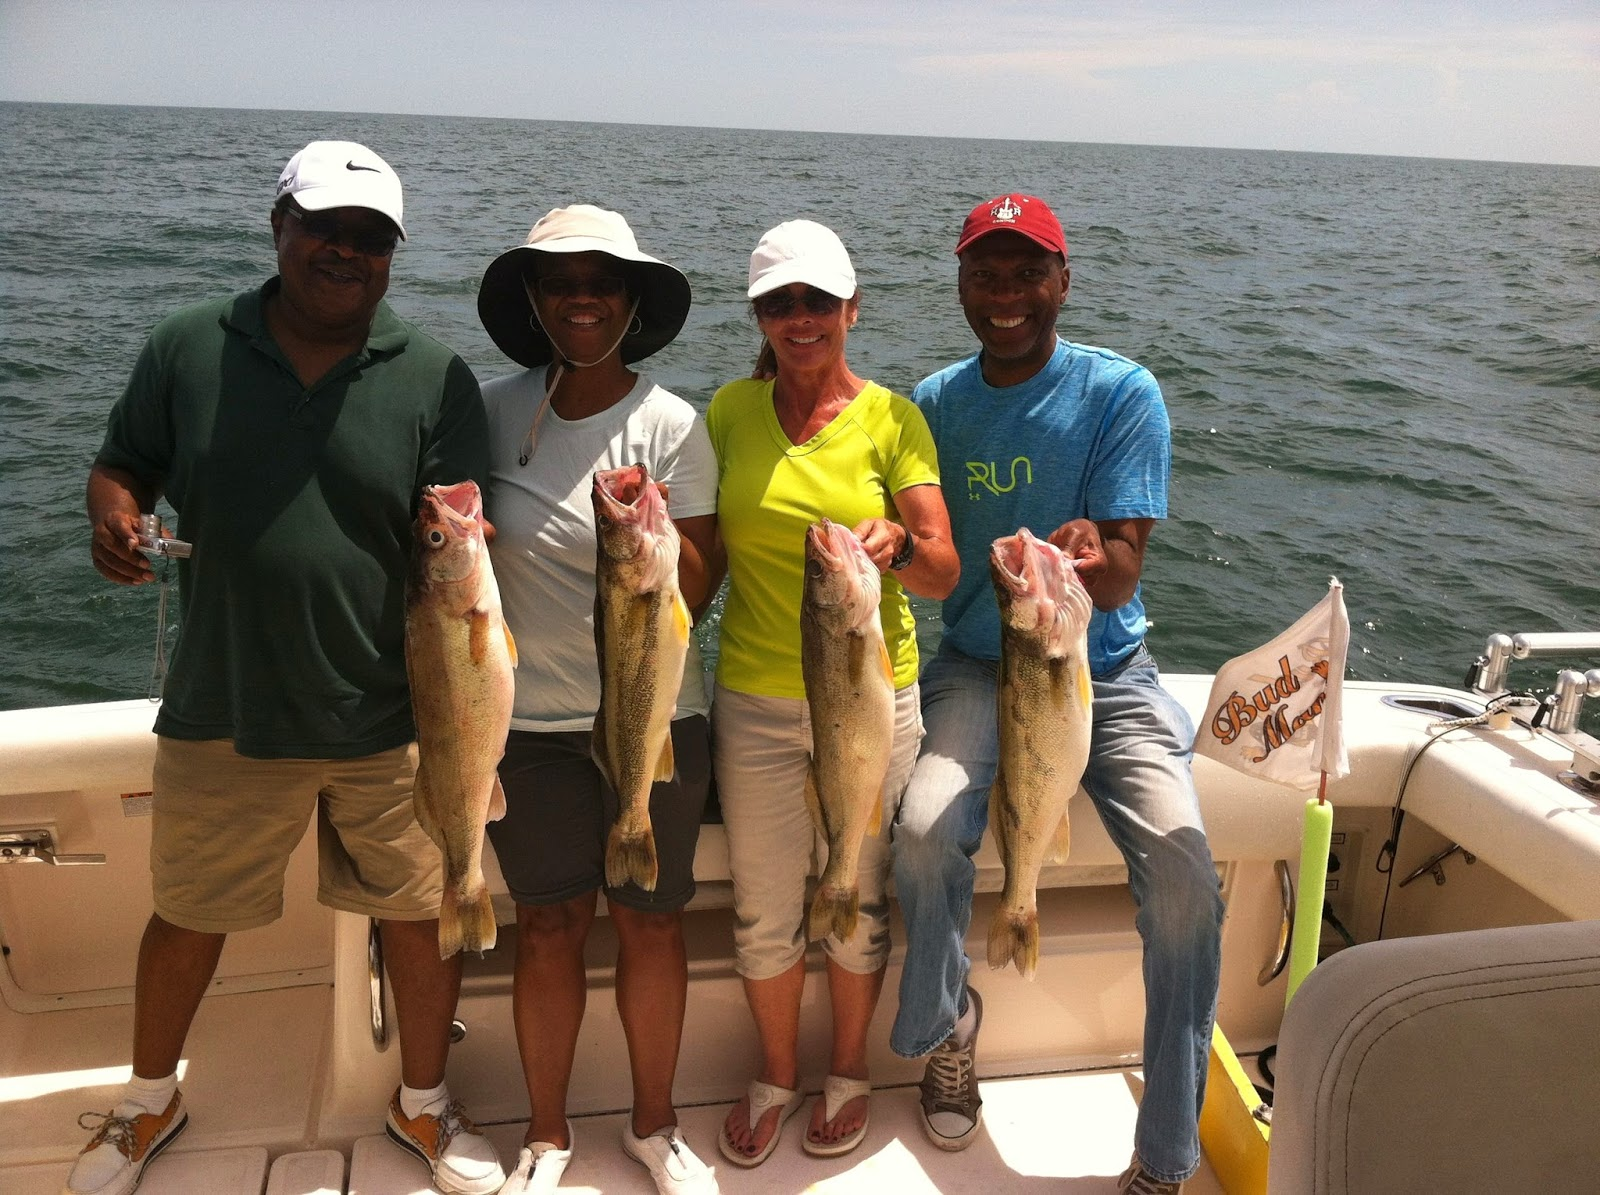 Lake erie walleye fishing reports east of pelee island 6 29 for Odnr fishing report